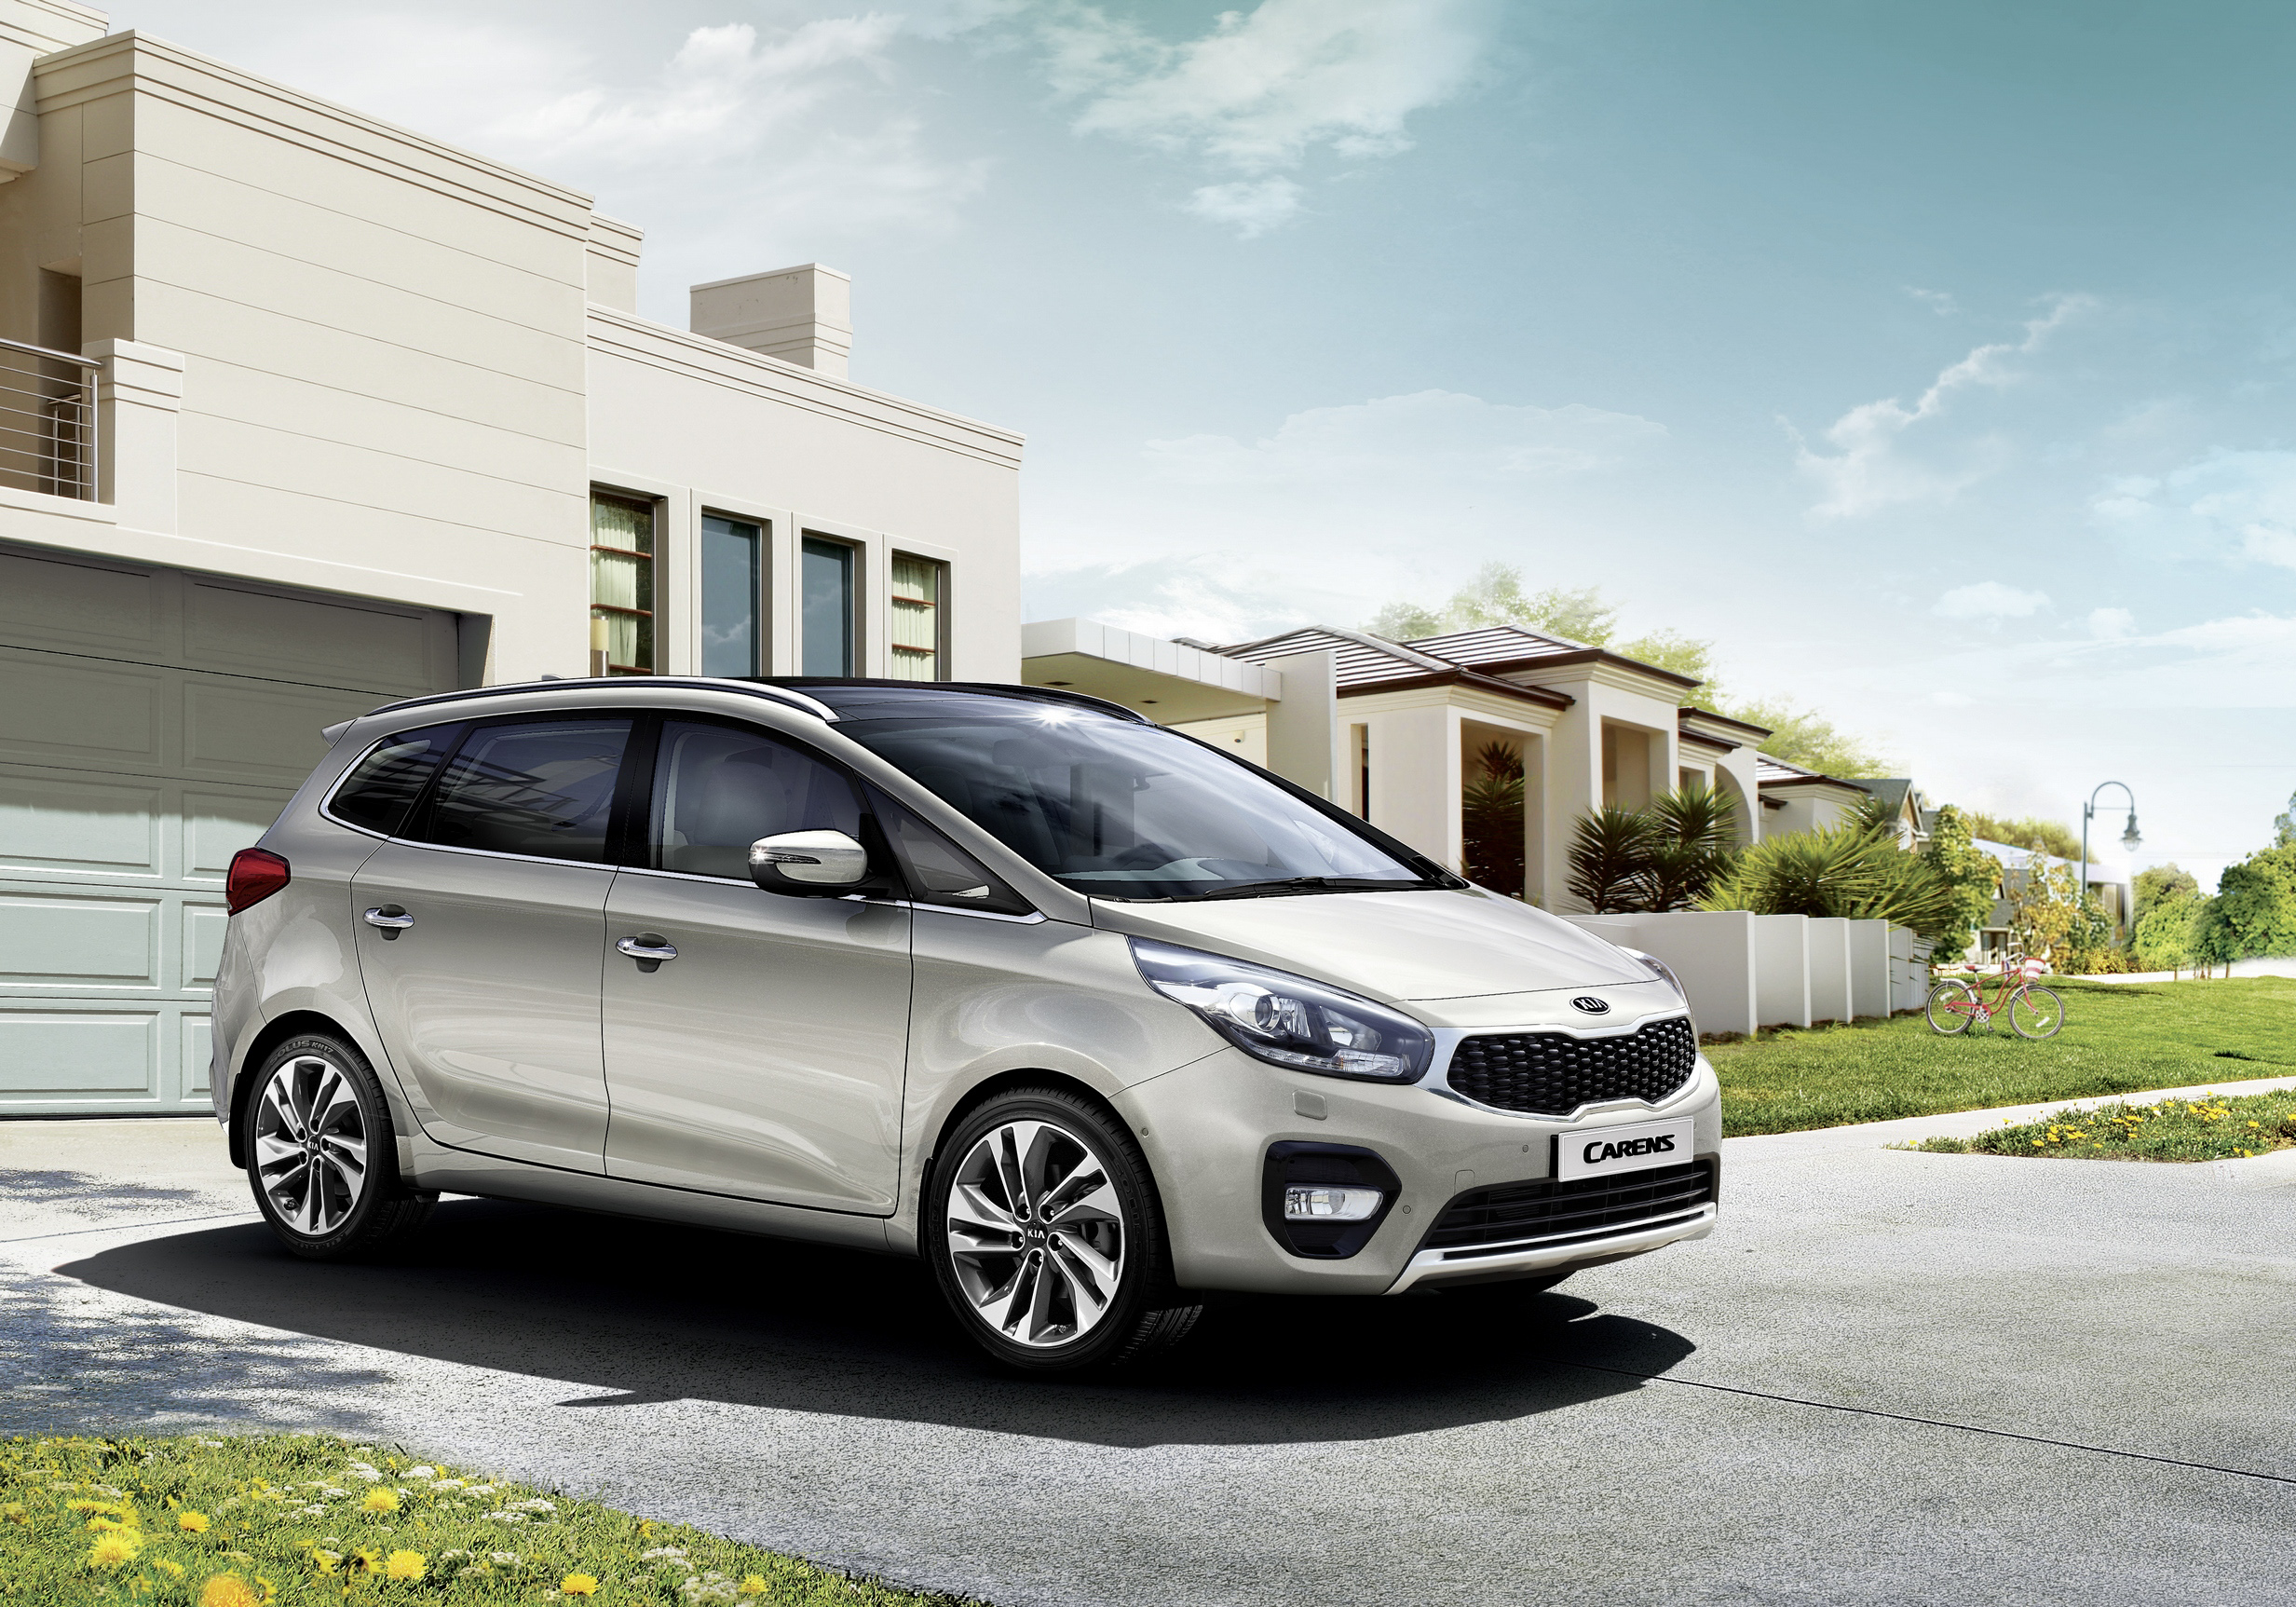 Kia announces details of key upgrades to Carens (Rondo)